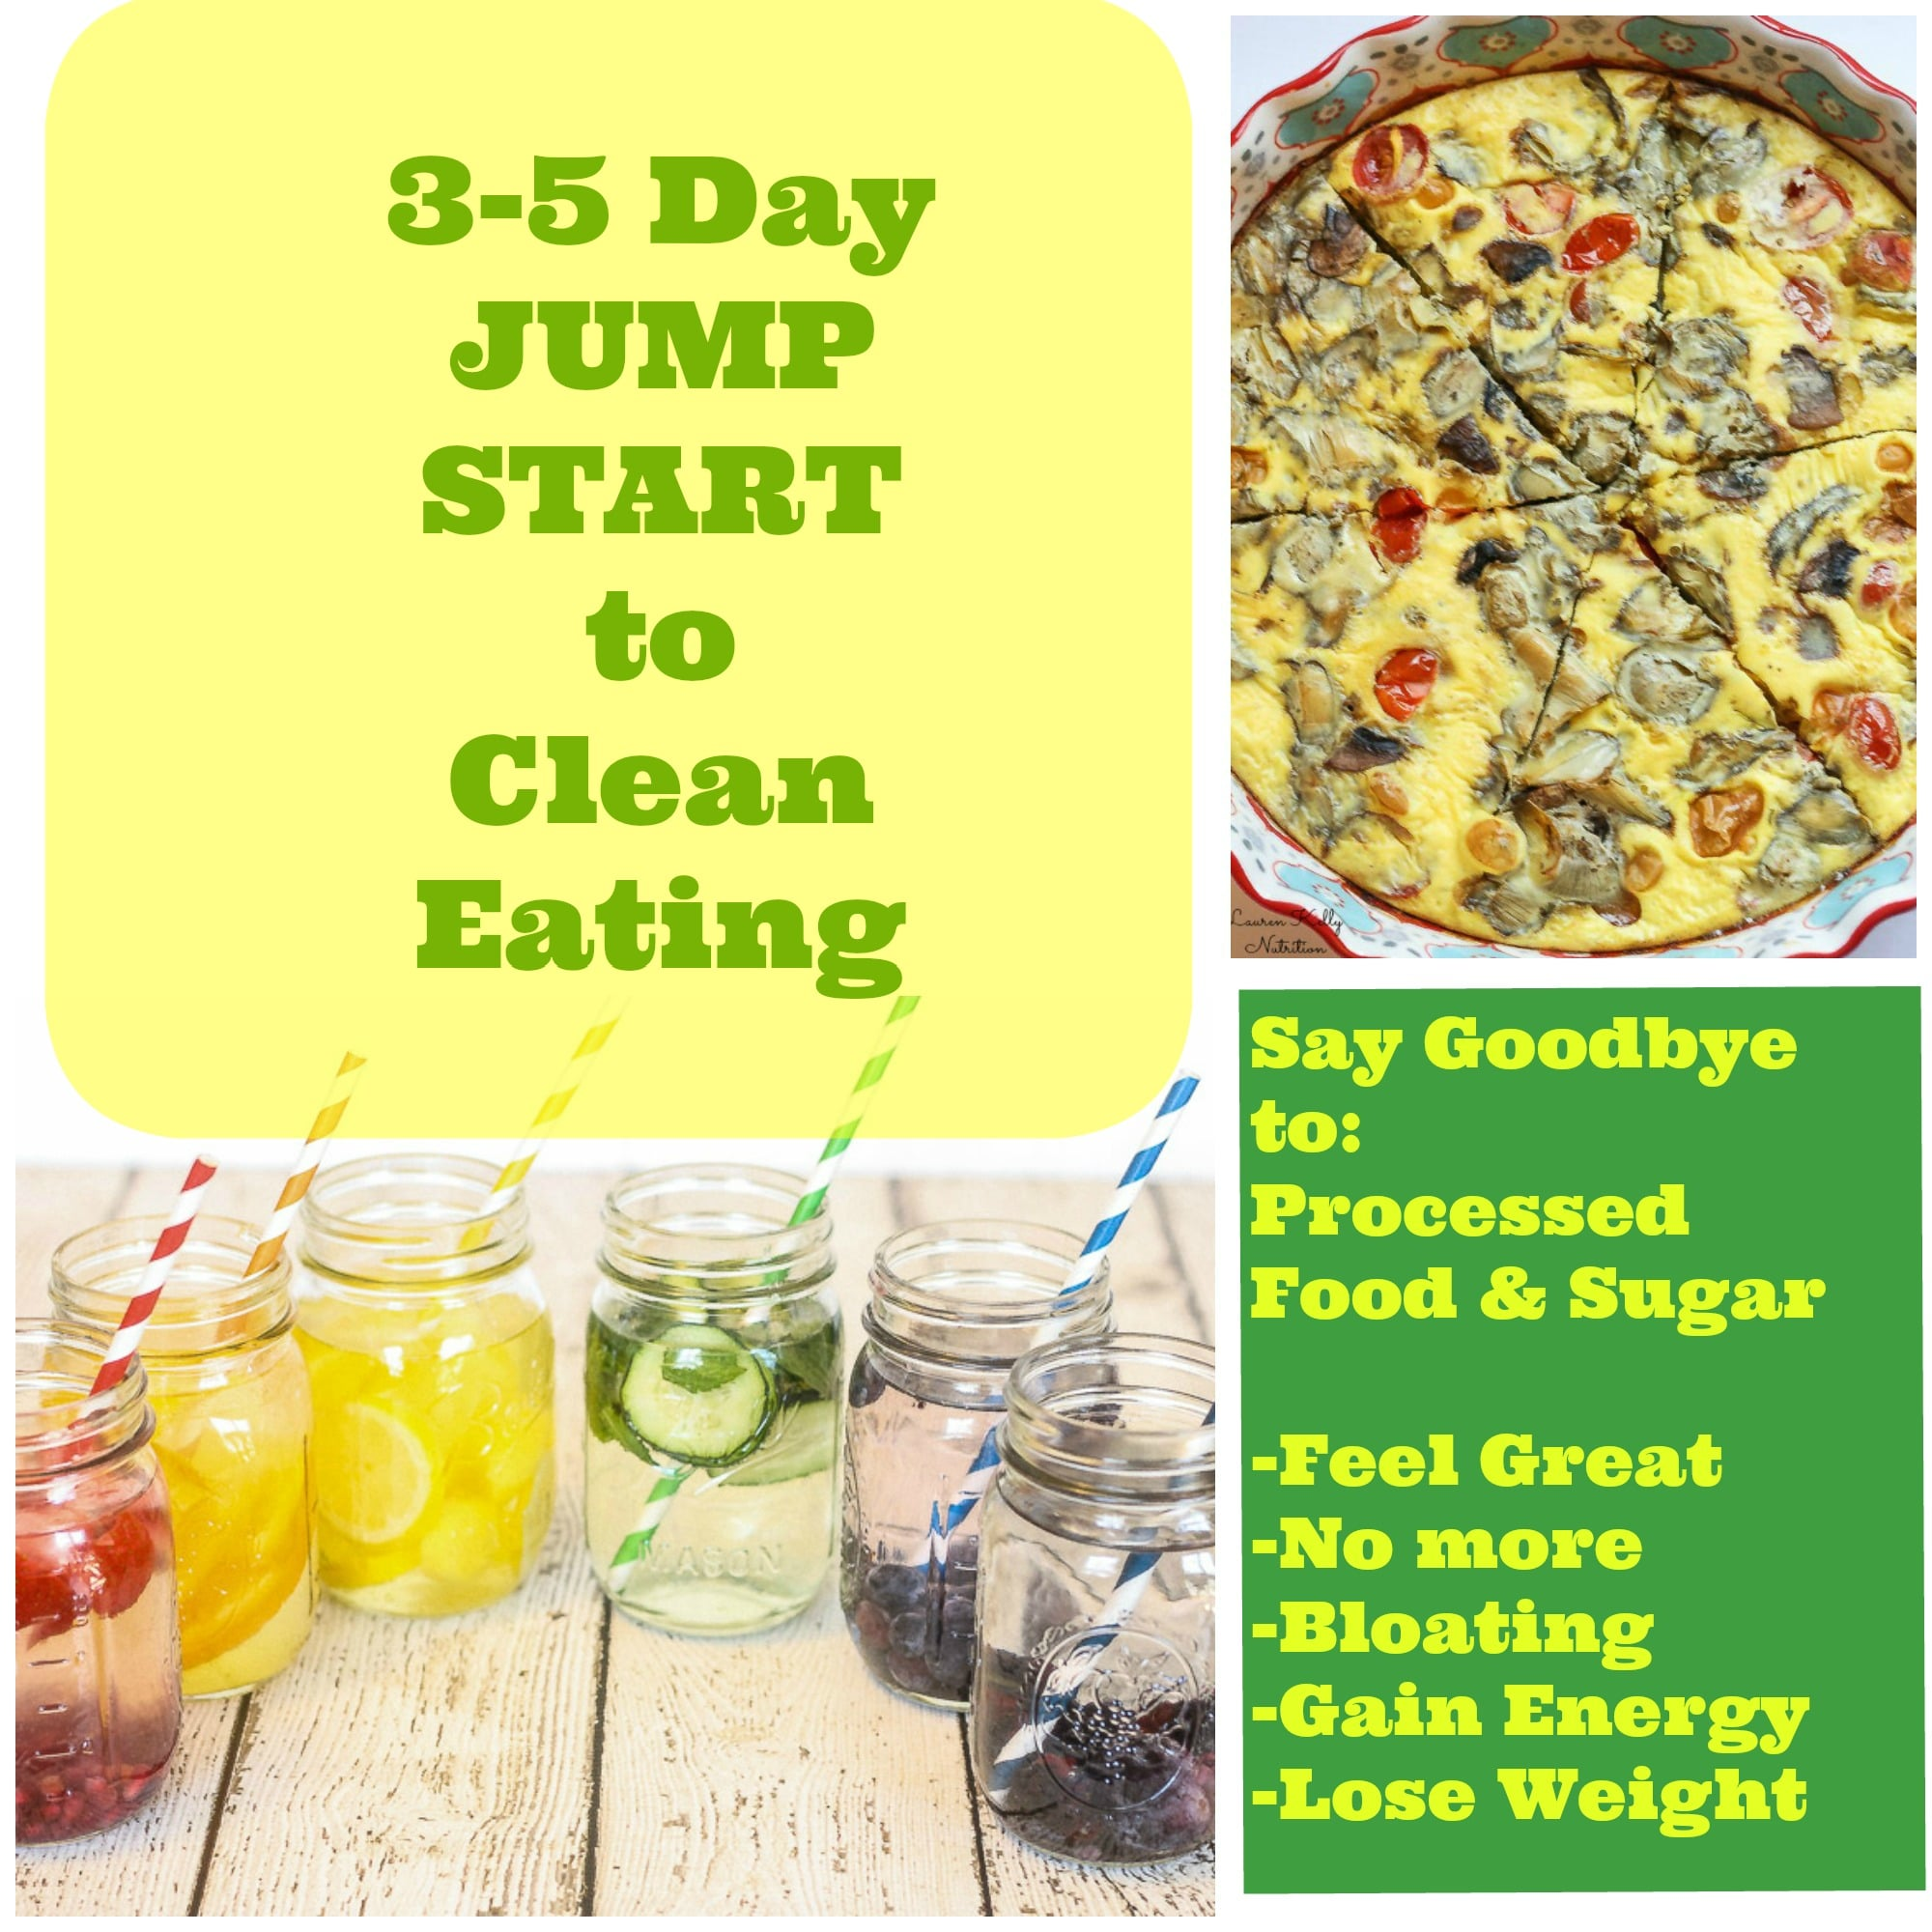 Three five day jump start to clean eating and grocery list 3 5 days to jump start into clean eating its so easy lose forumfinder Images